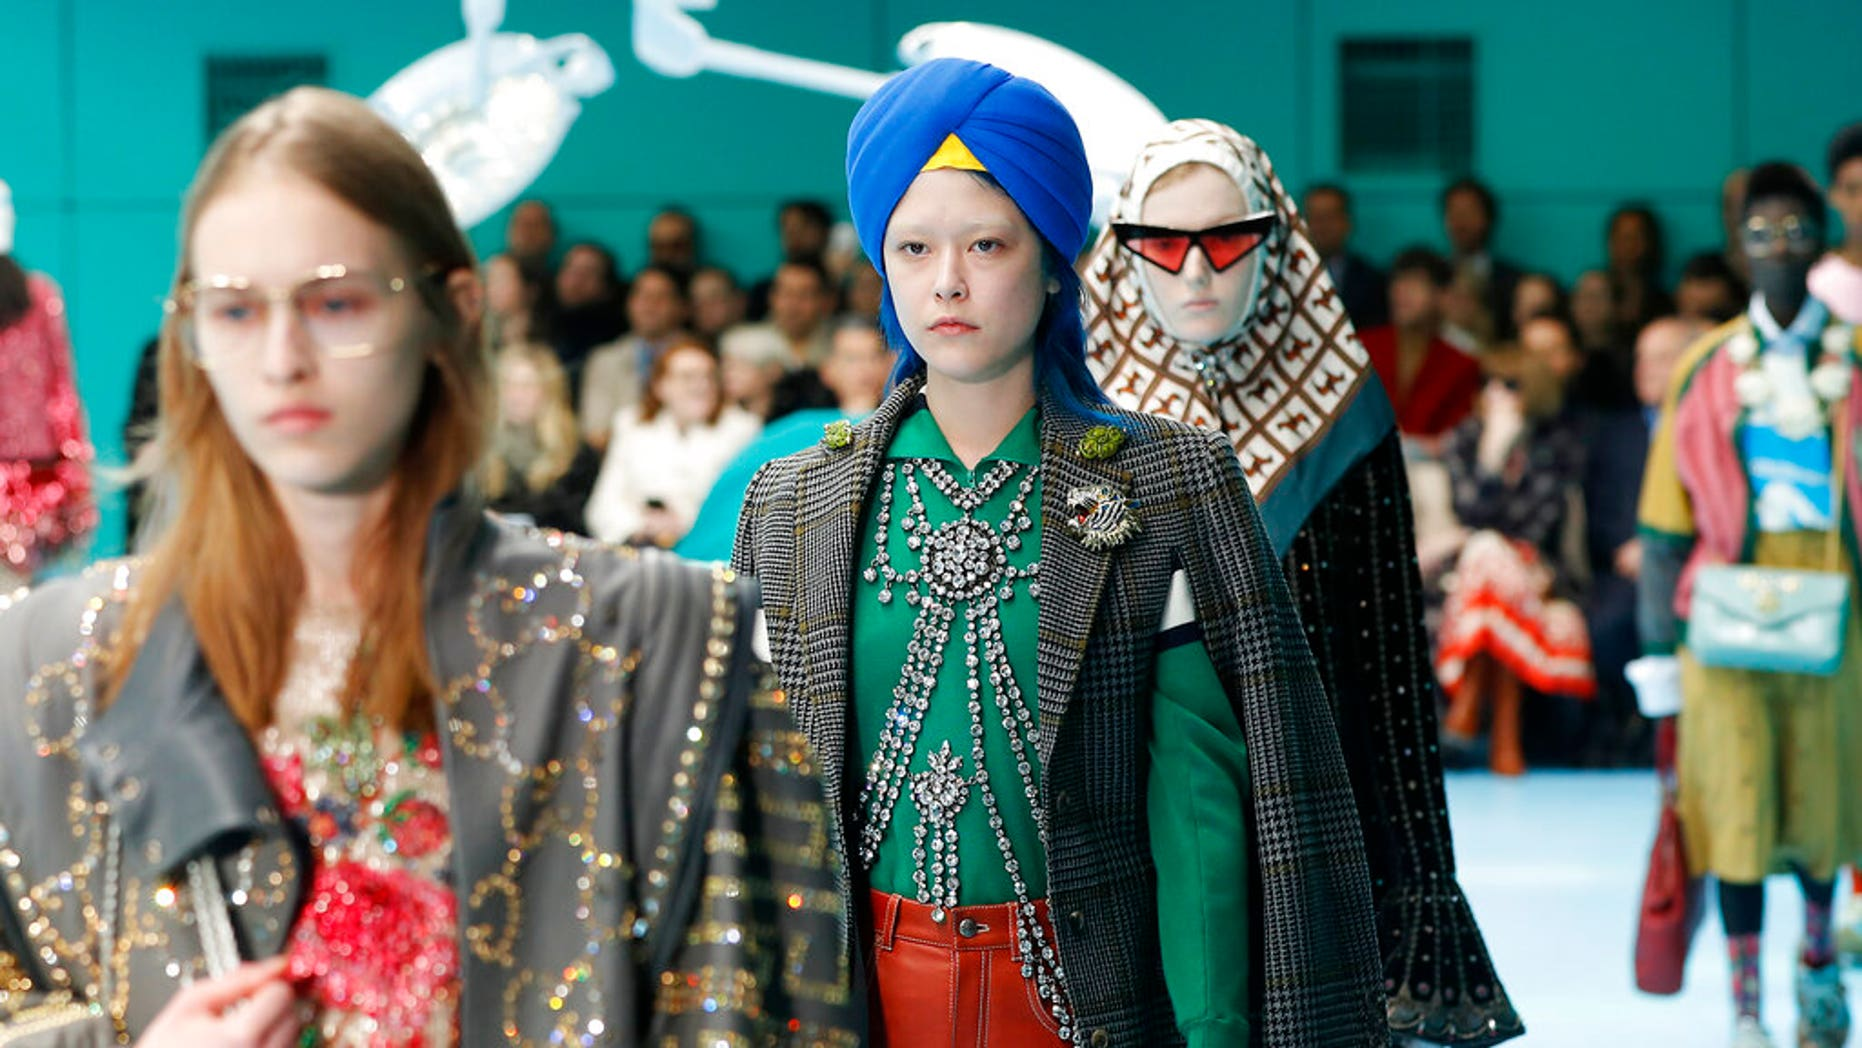 1b5e0cd1ec4b Nordstrom sorry, but Sikhs await Gucci apology for turban they found ...